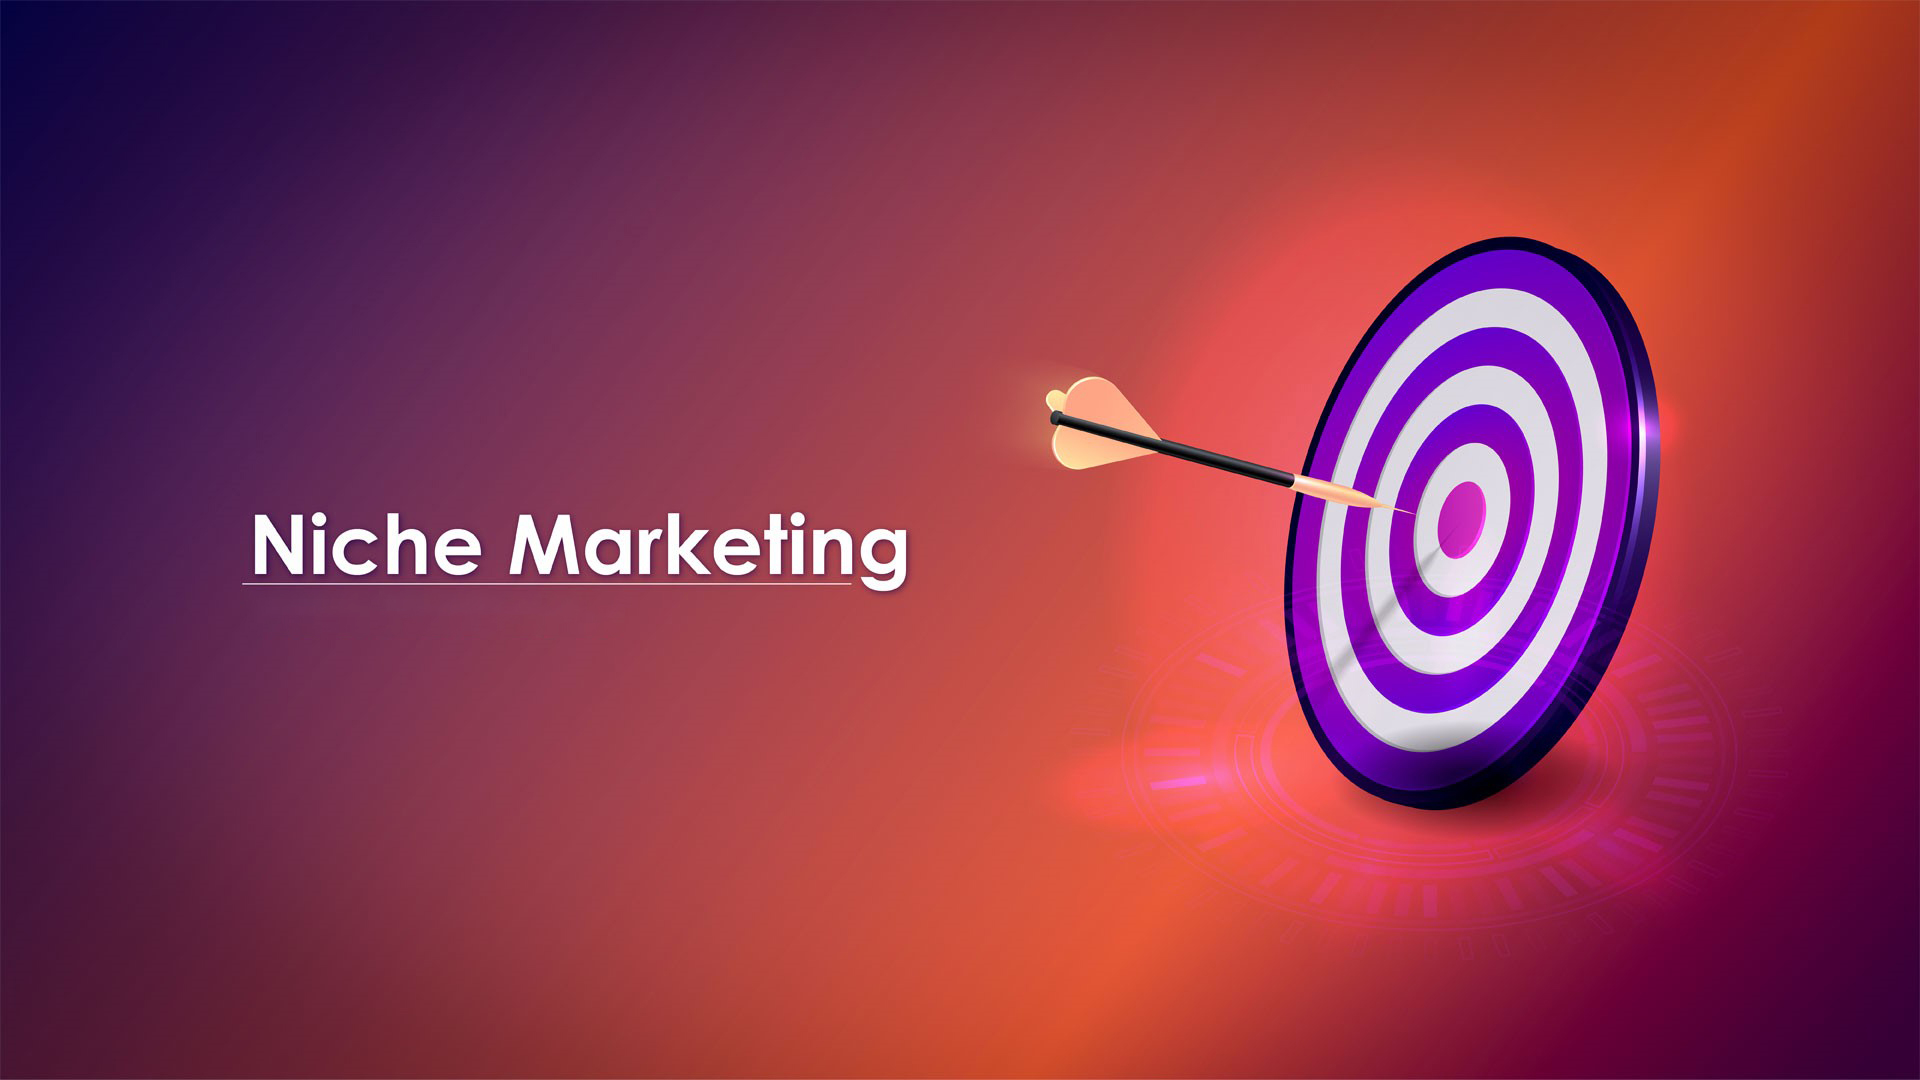 نیچ مارکتینگ (Niche Marketing)